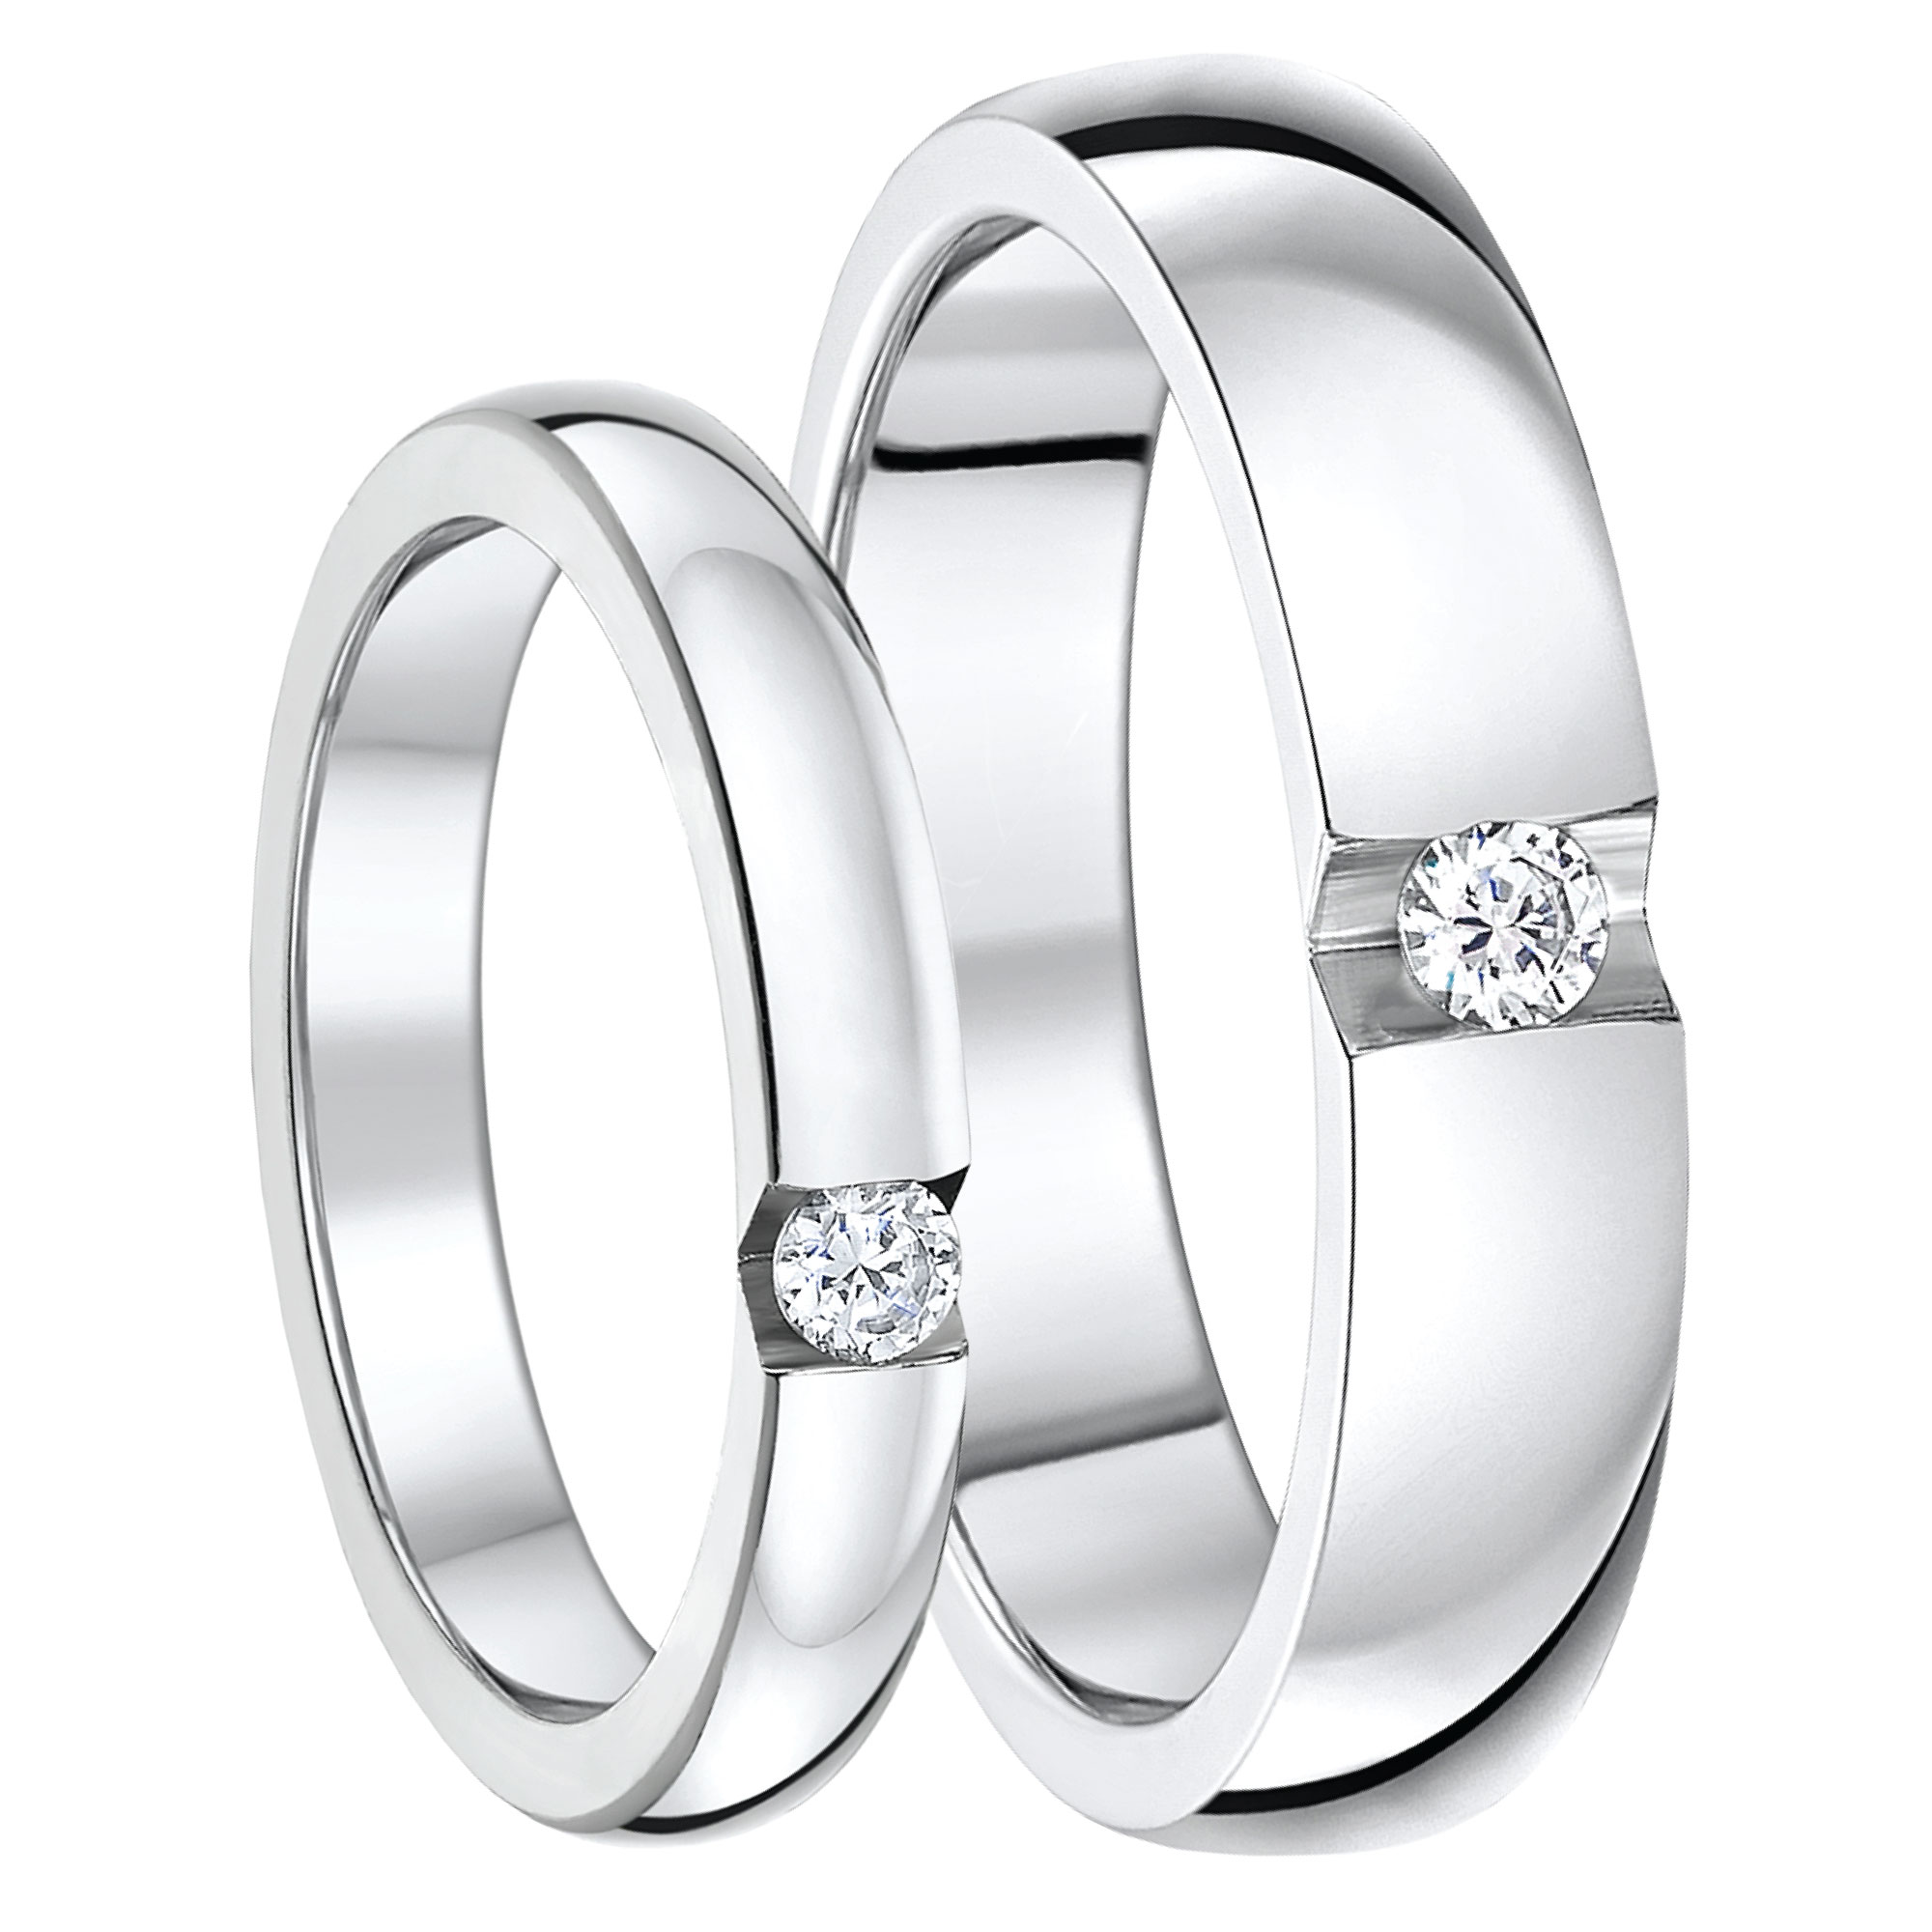 pc steel is itm ring black band his image engagement stainless wedding ma rings titanium hers set loading